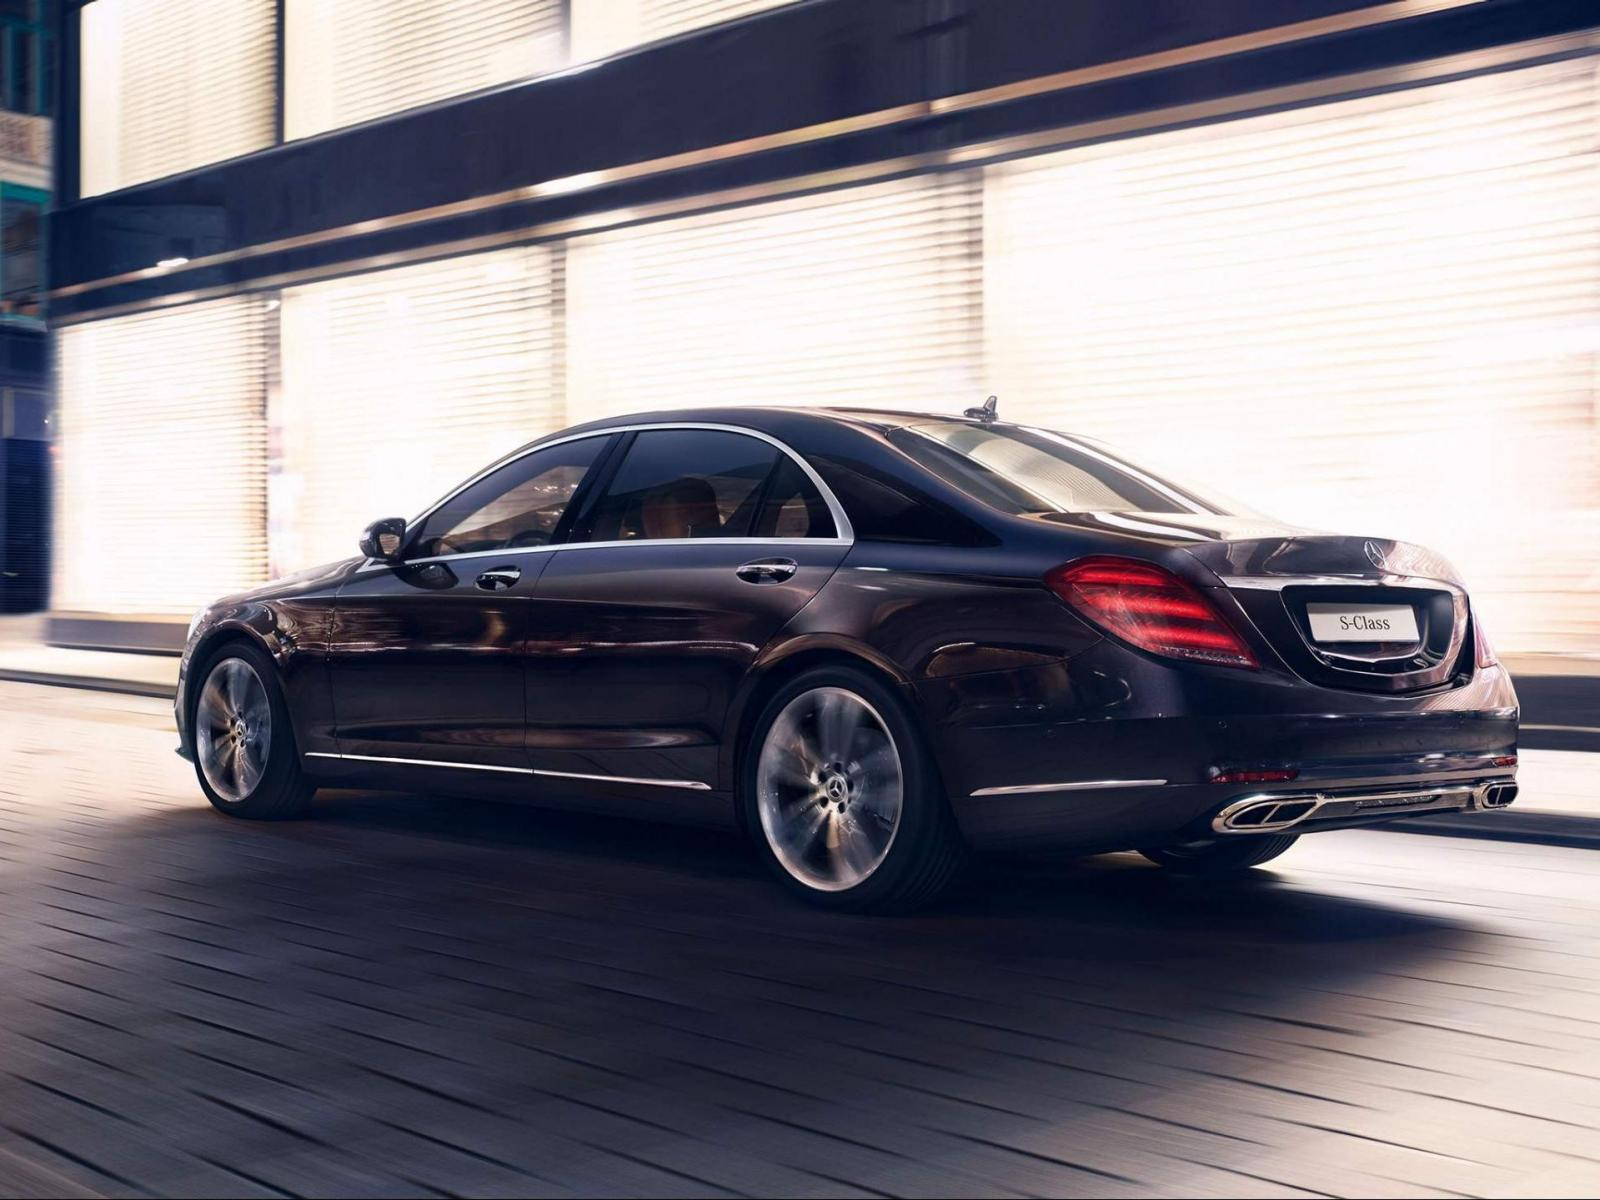 Mb X? S? Mercedes Benz S Class Wallpapers Free Download